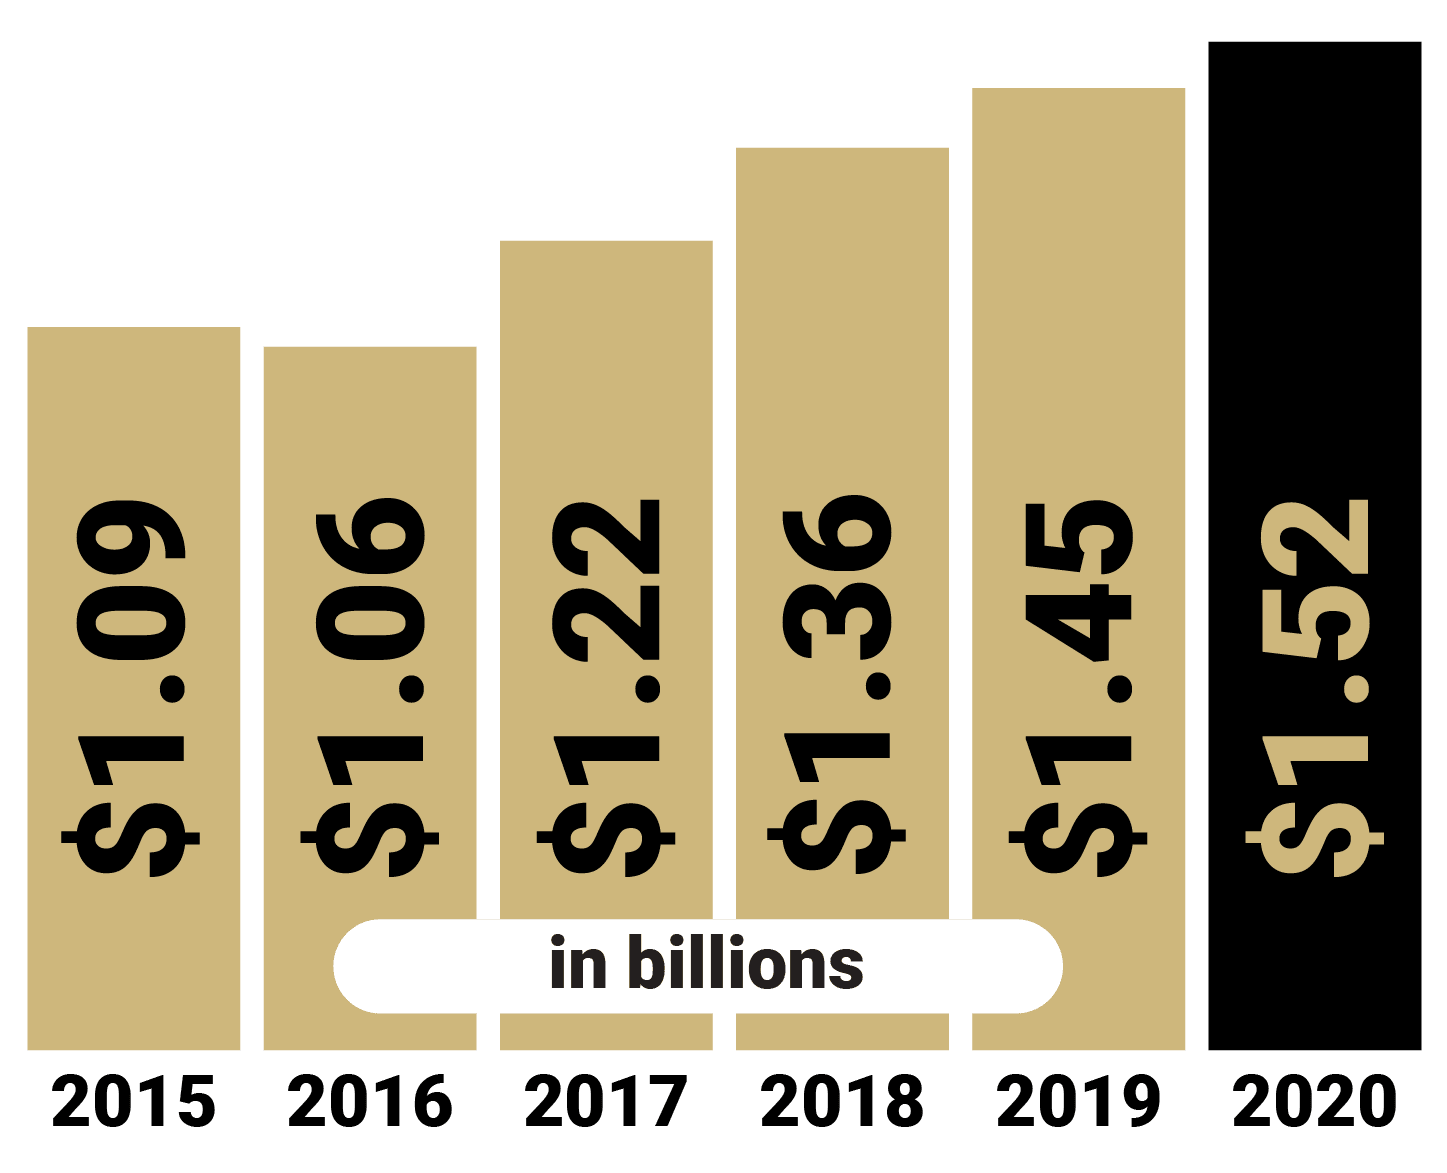 This is a bar chart that shows the value of the CU endowment by year. Here are the values: $1.09 billion for 2015, $1.06 billion for 2016, $1.22 billion for 2017, $1.36 billion for 2018, $1.45 billion for 2019 and $1.52 billion for 2020.